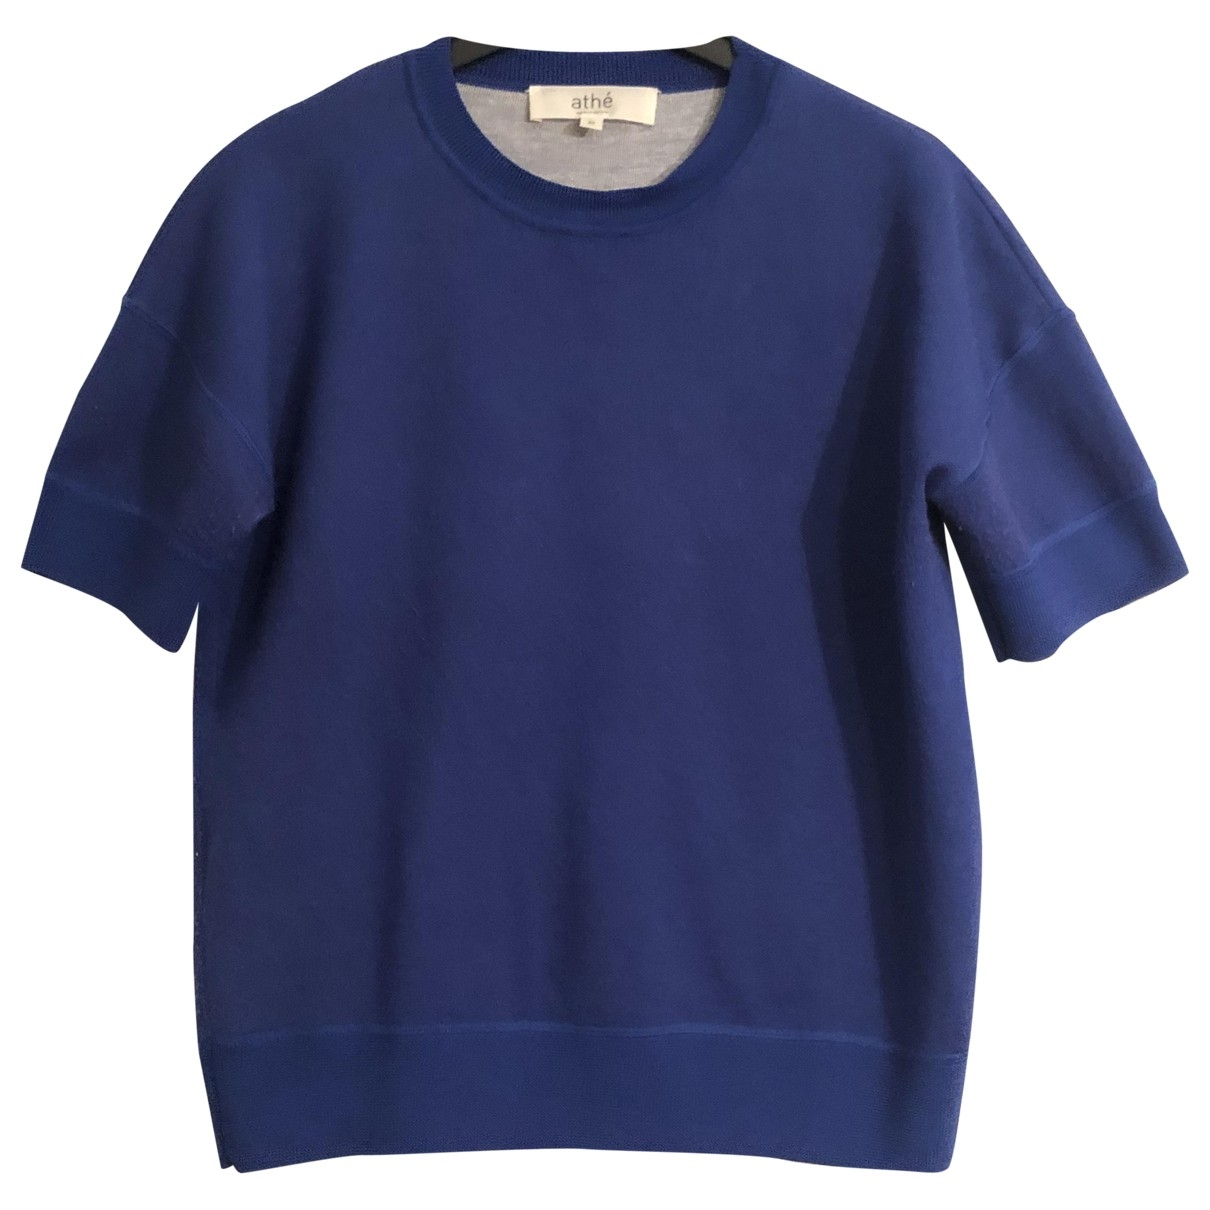 Vanessa Bruno Athe \N Blue  top for Women 38 FR